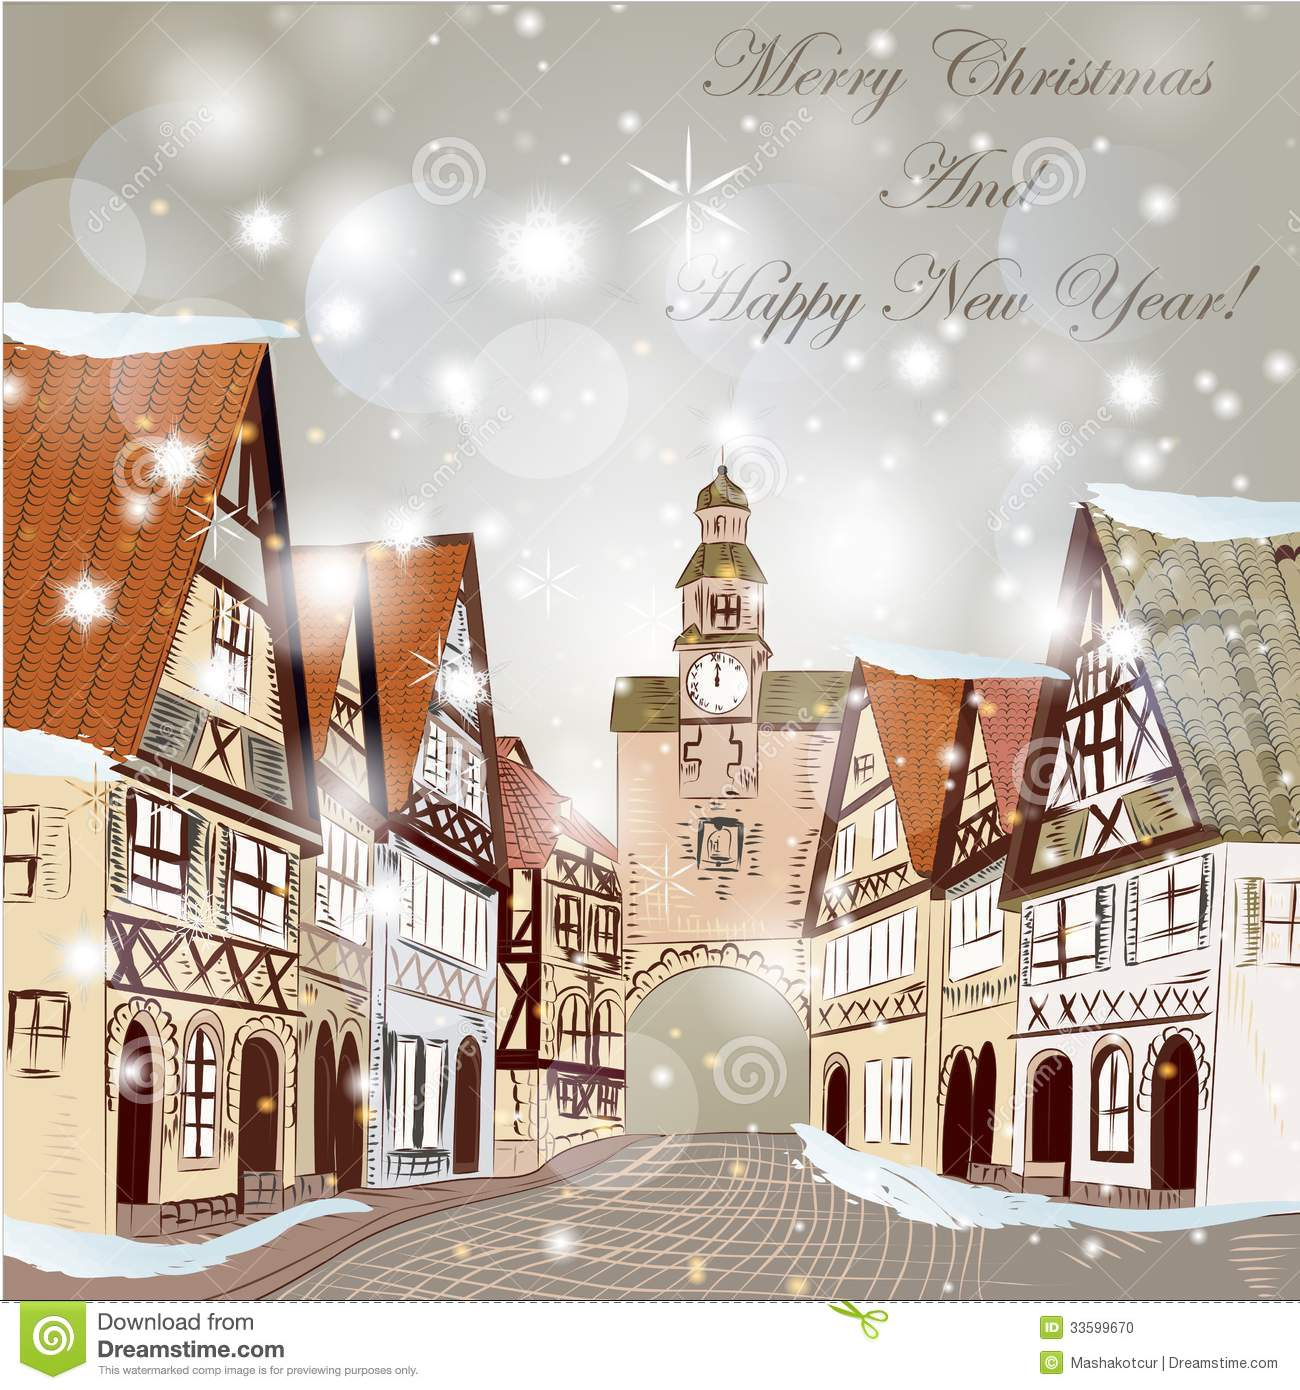 Christmas vector hand drawn card in sketch style with old street and ...